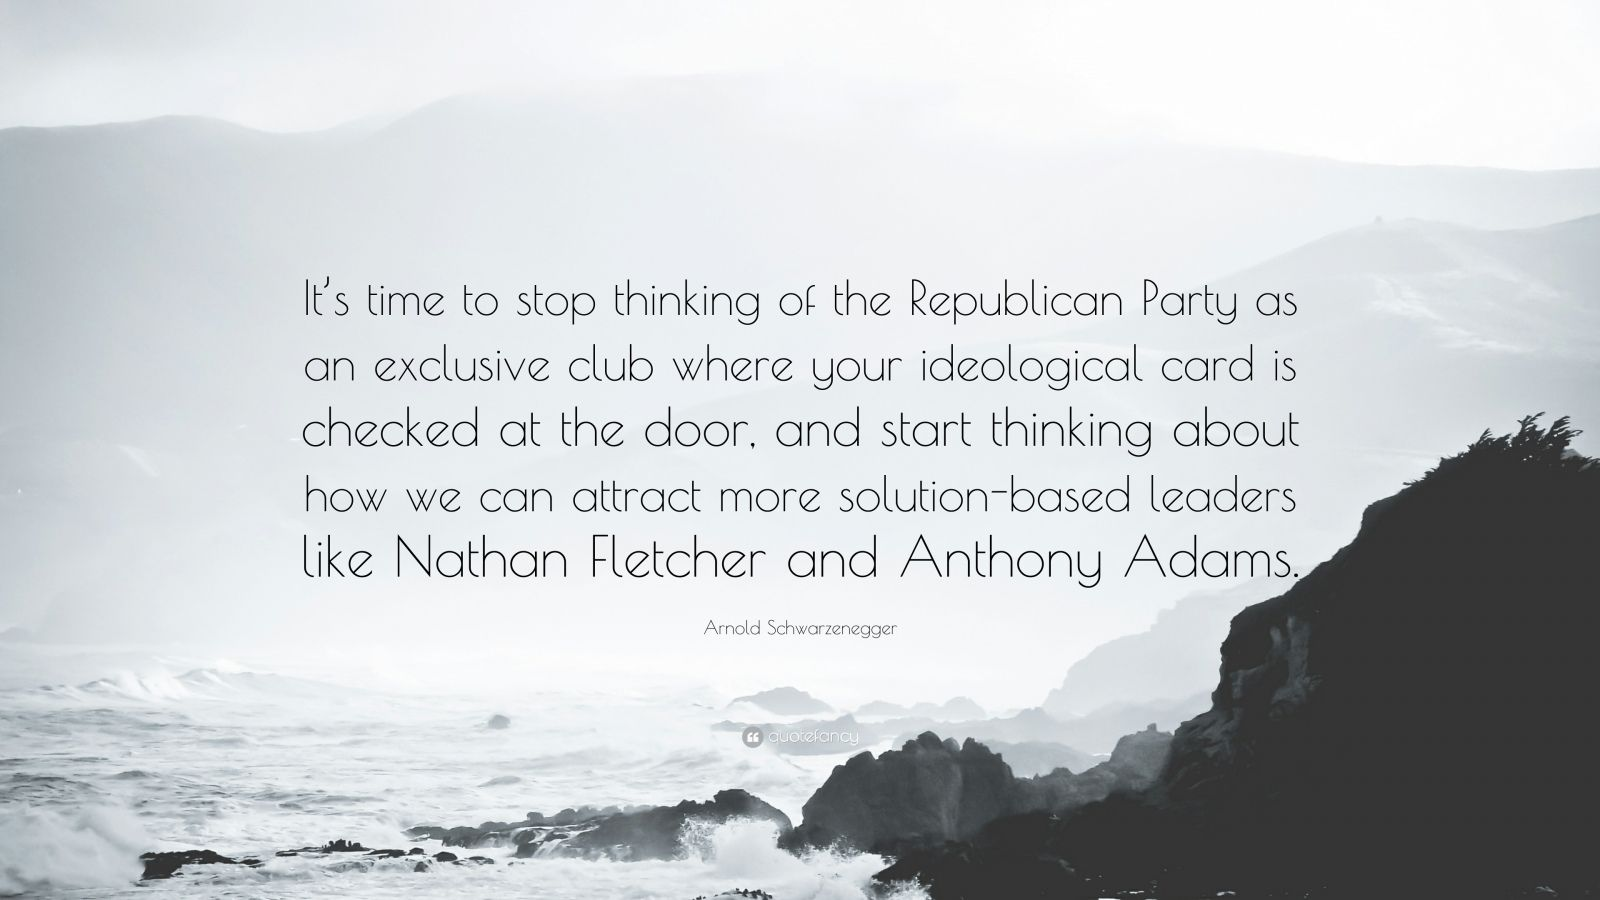 """Arnold Schwarzenegger Quote: """"It's time to stop thinking of the Republican Party as an exclusive club where your ideological card is checked at the door, and start thinking about how we can attract more solution-based leaders like Nathan Fletcher and Anthony Adams."""""""